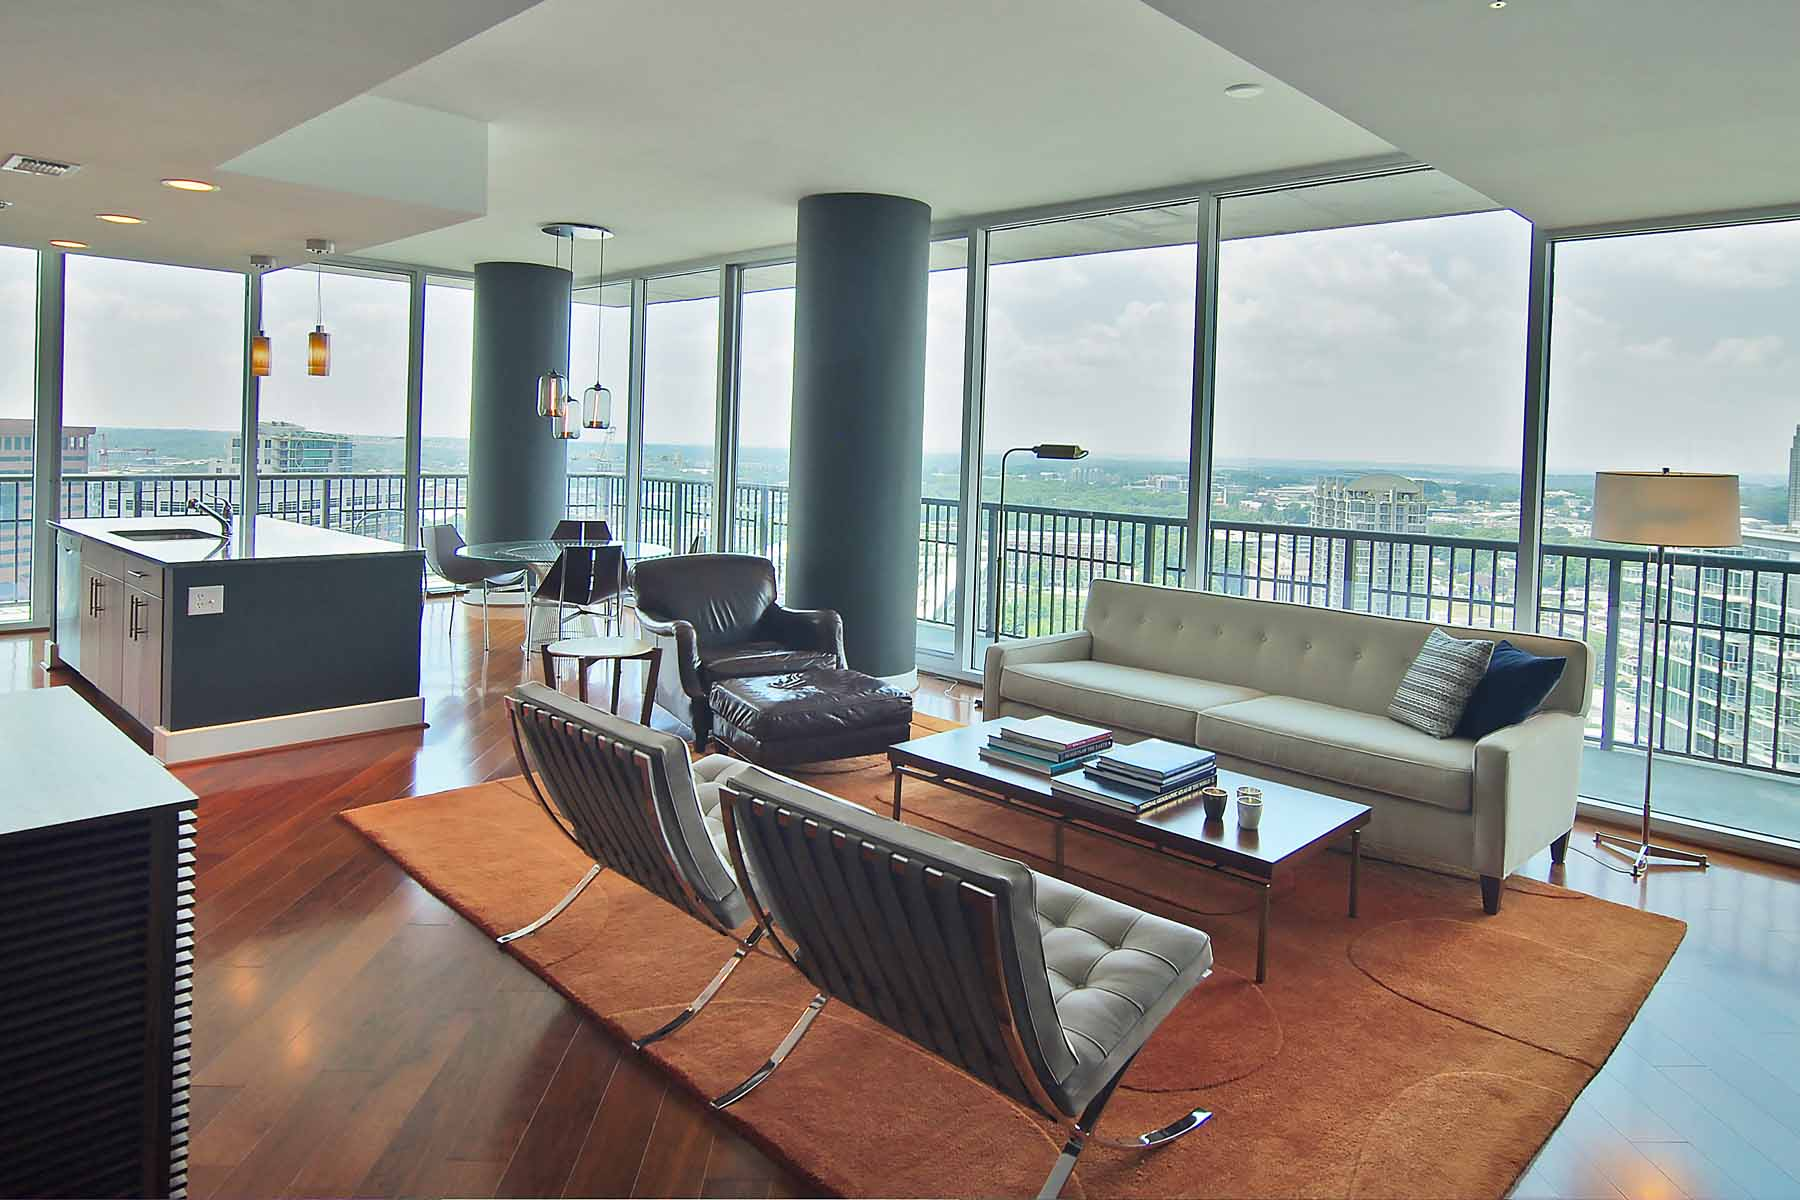 Condominium for Sale at Sophisticated Contemporary Midtown Condominium with Unobstructed Views! 1080 Peachtree Street Ne #2511 Atlanta, Georgia, 30309 United States